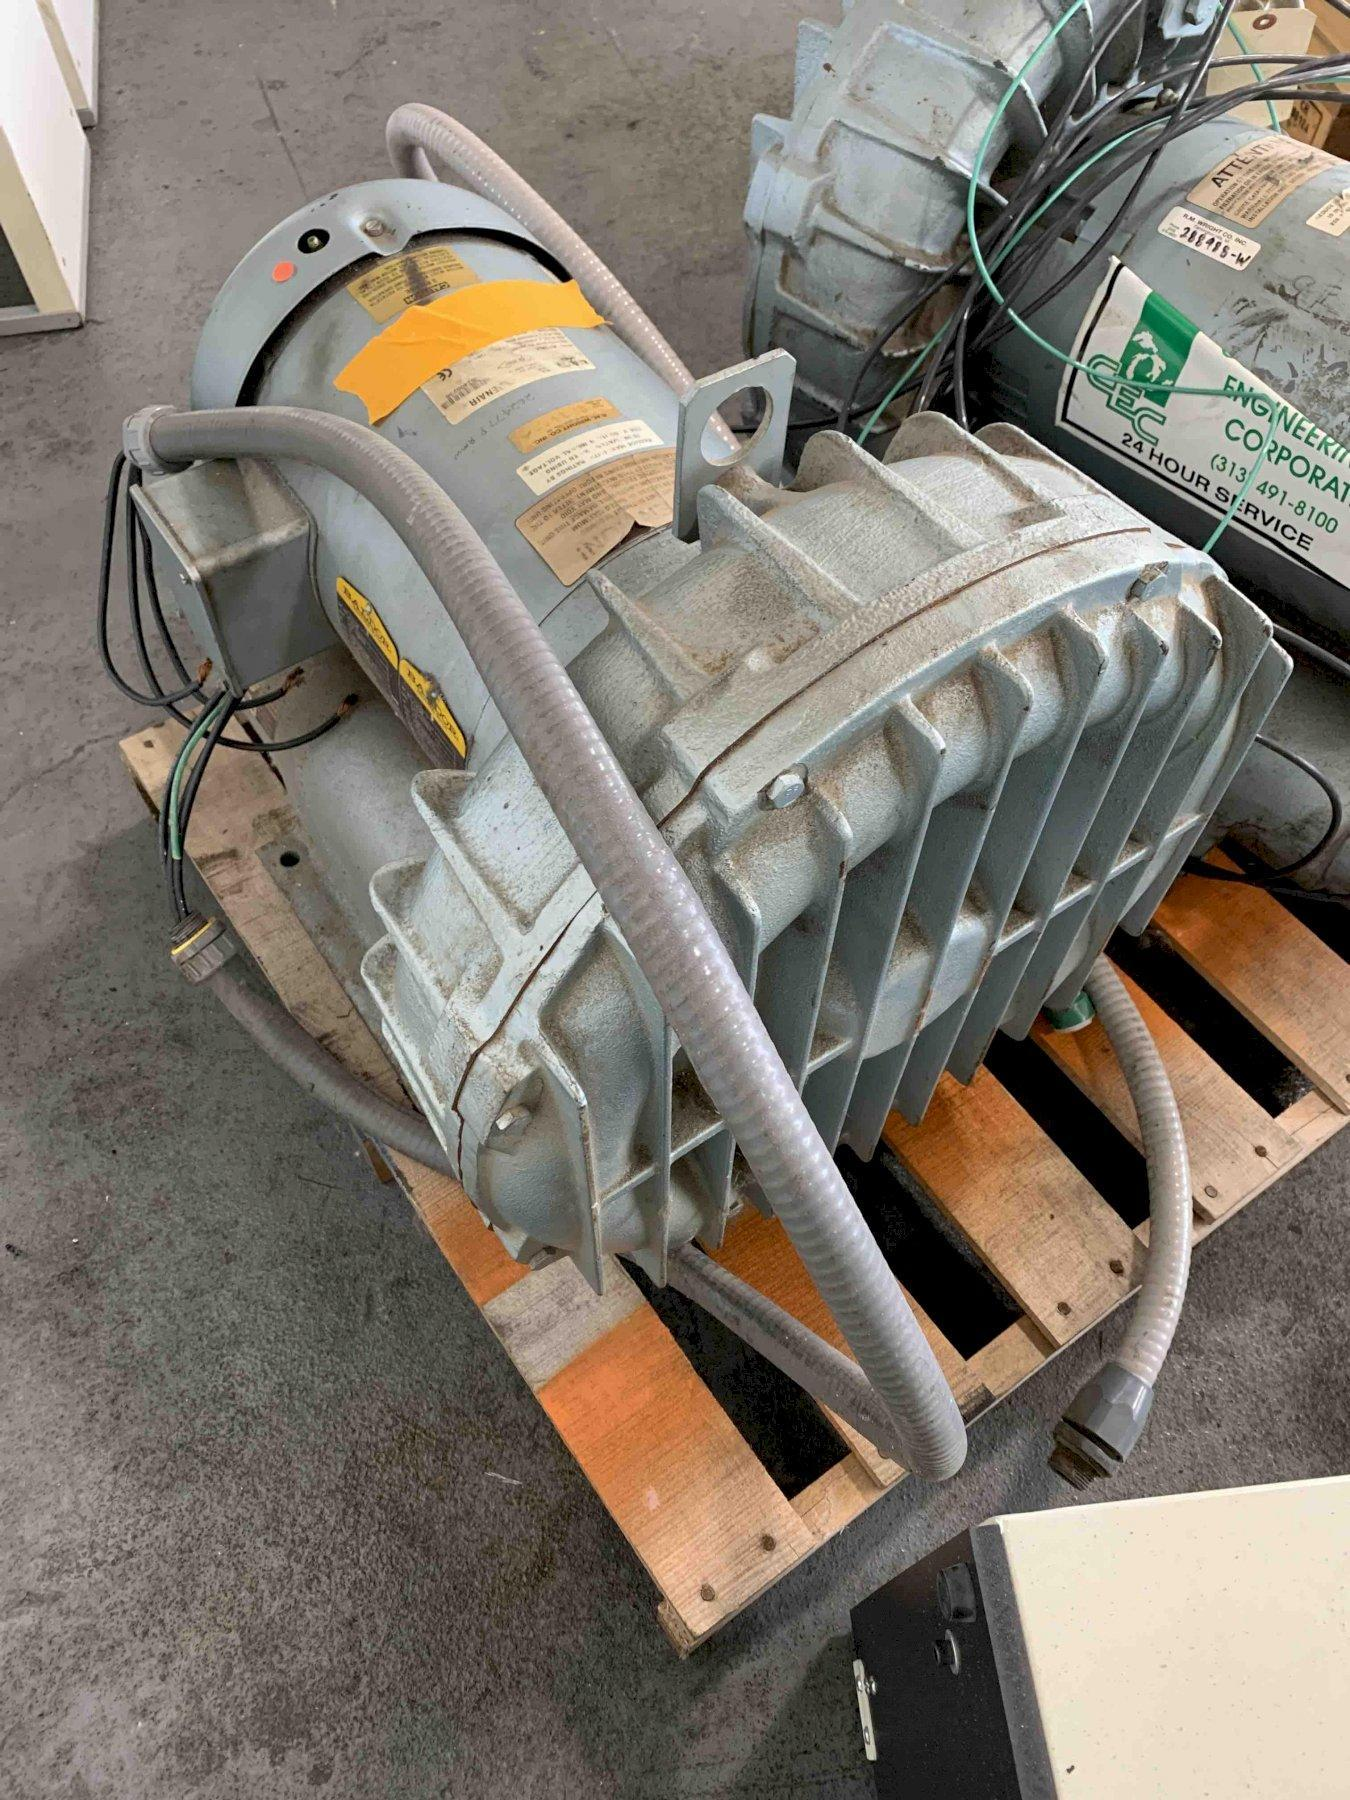 USED GAST MODEL R7100A-3 REGENERATIVE BLOWER, Stock # 10760